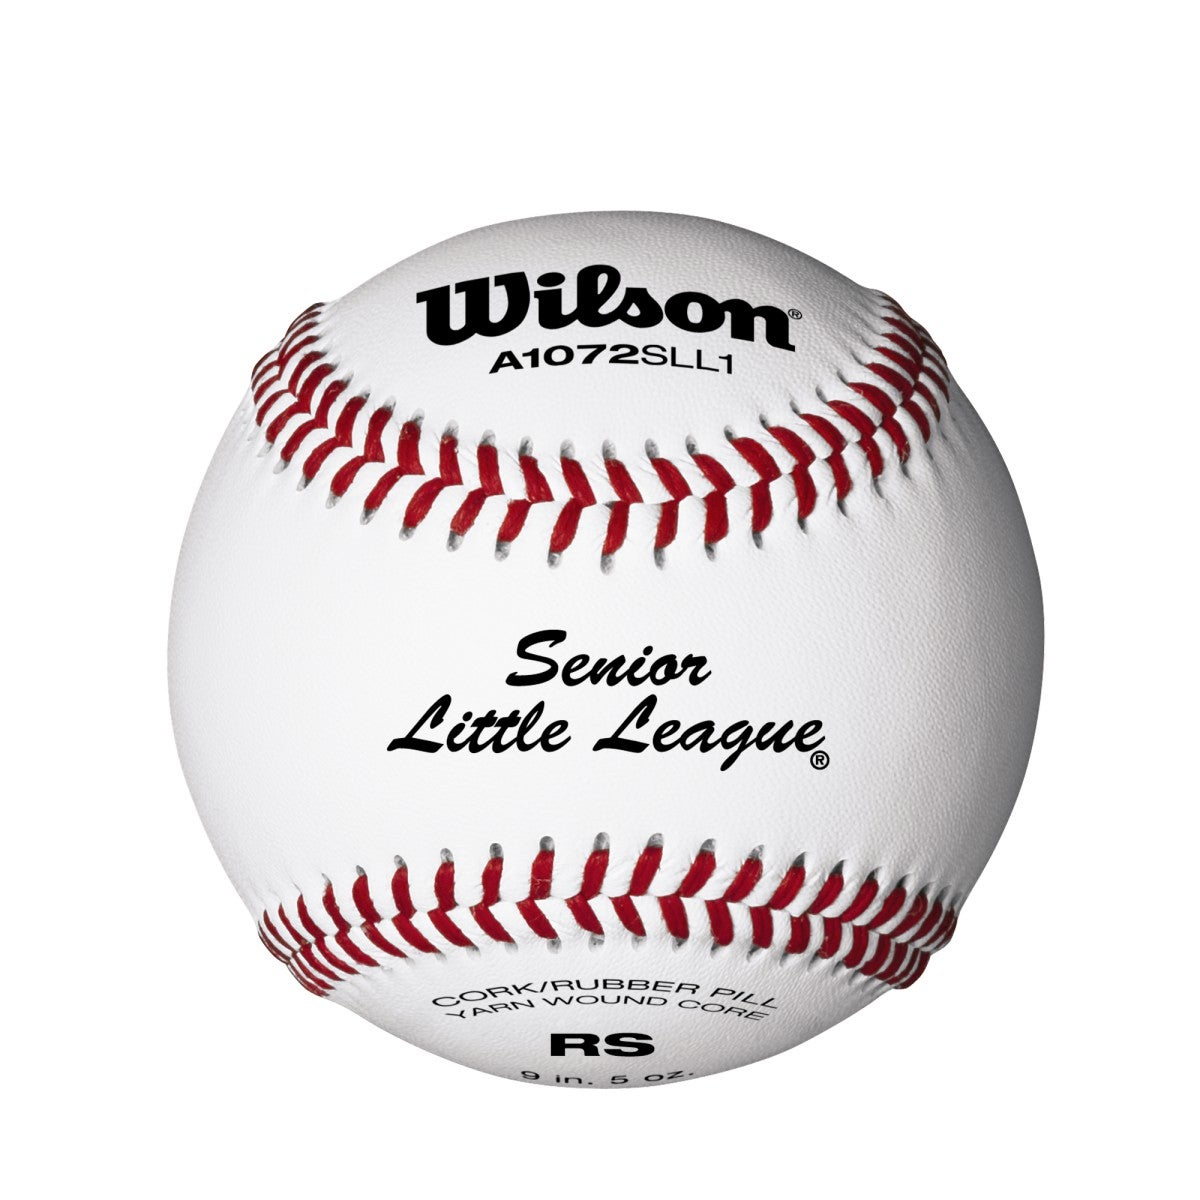 A1072 League Series Senior Little League Baseballs